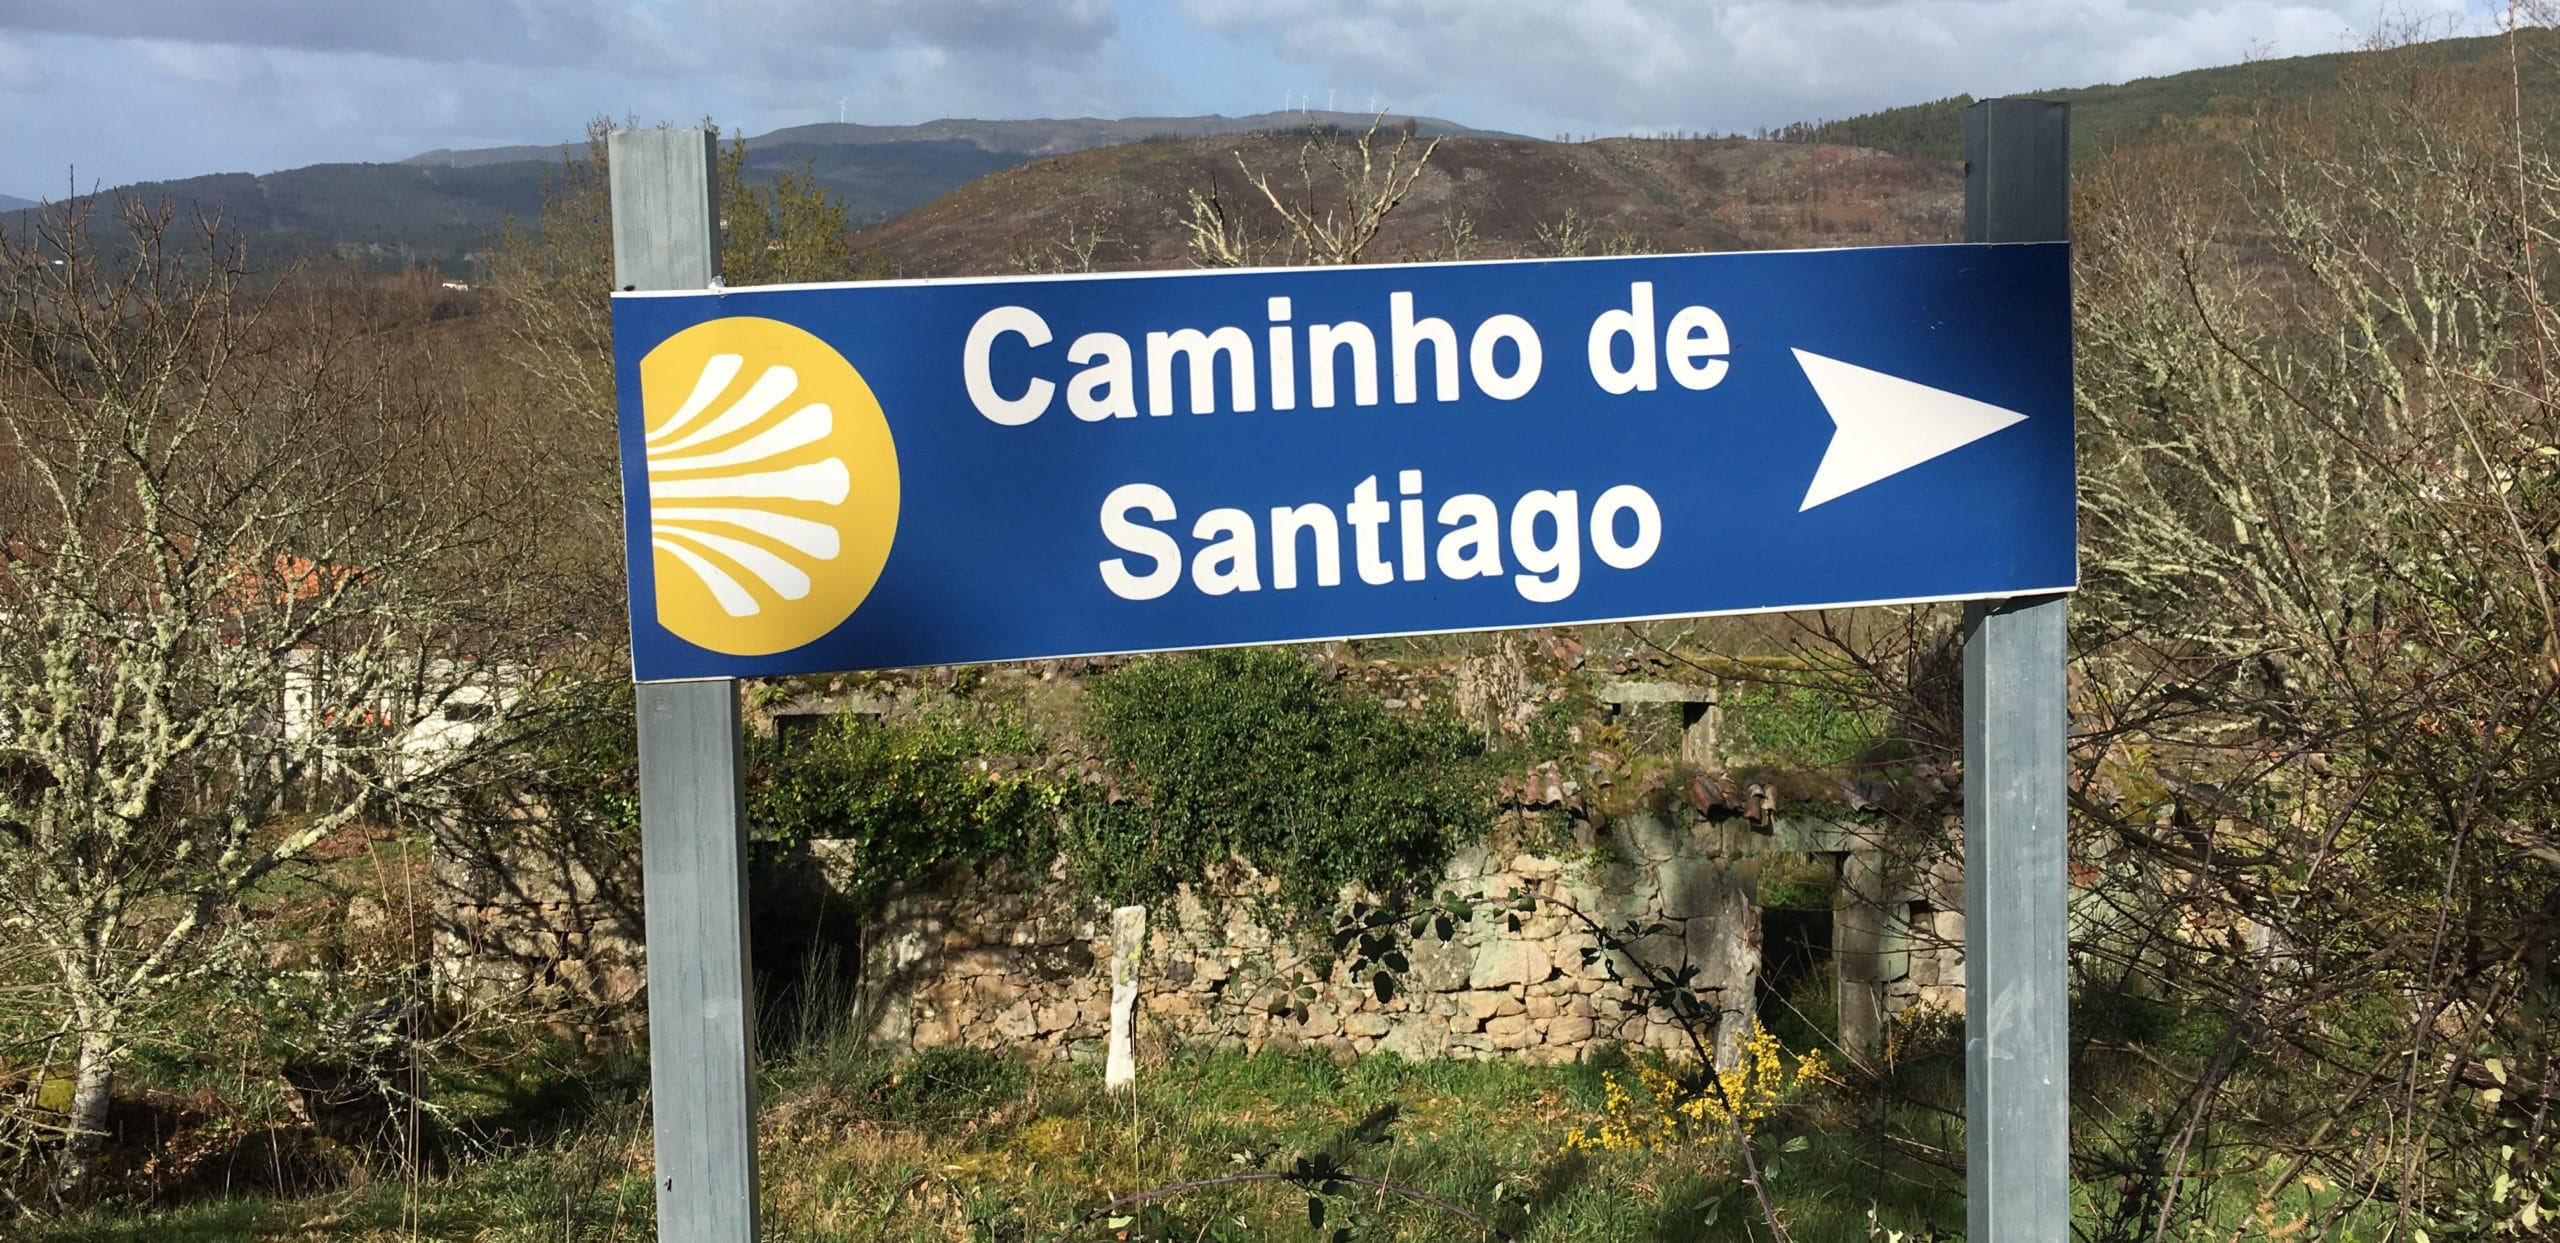 Predicting of the Portuguese Way in times of Covid-19